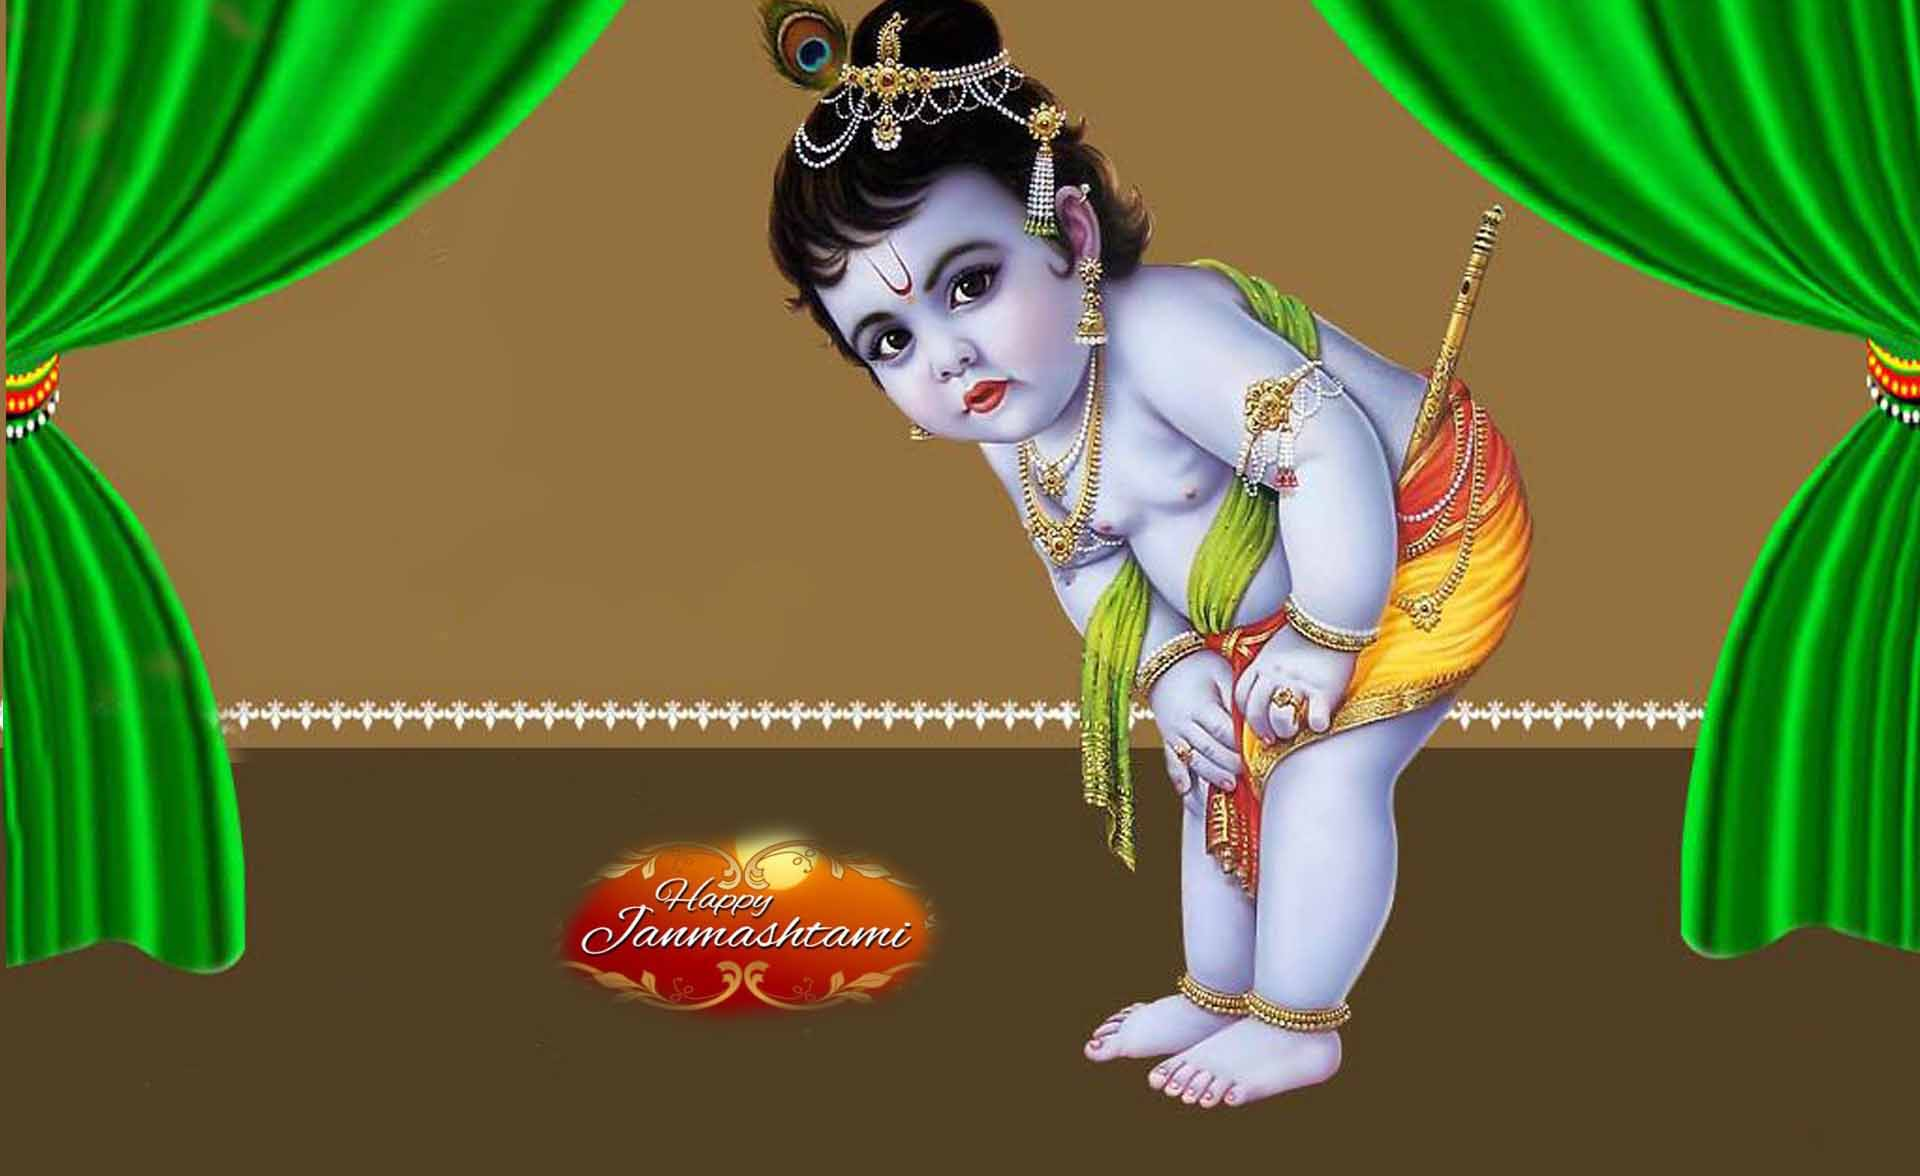 2016 clipart janmashtami. Happy krishna hd cover